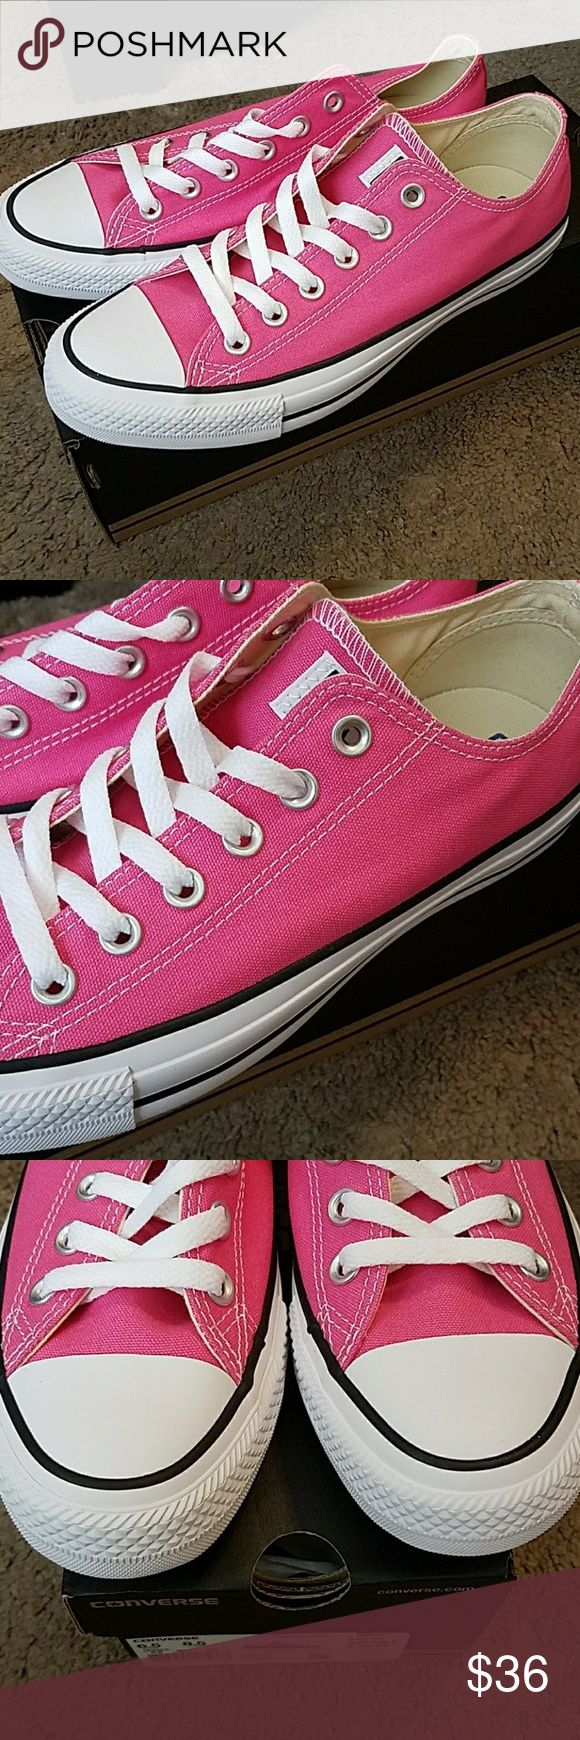 Converse Lo Tops Bubble Gum Pink Girls sz 7 🎉HP🎉 Adorable Bubble Gum Pink Converse Lo Tops Brand New In Box. Girls size 7 marked as Women's size 8.5 on box Converse Shoes